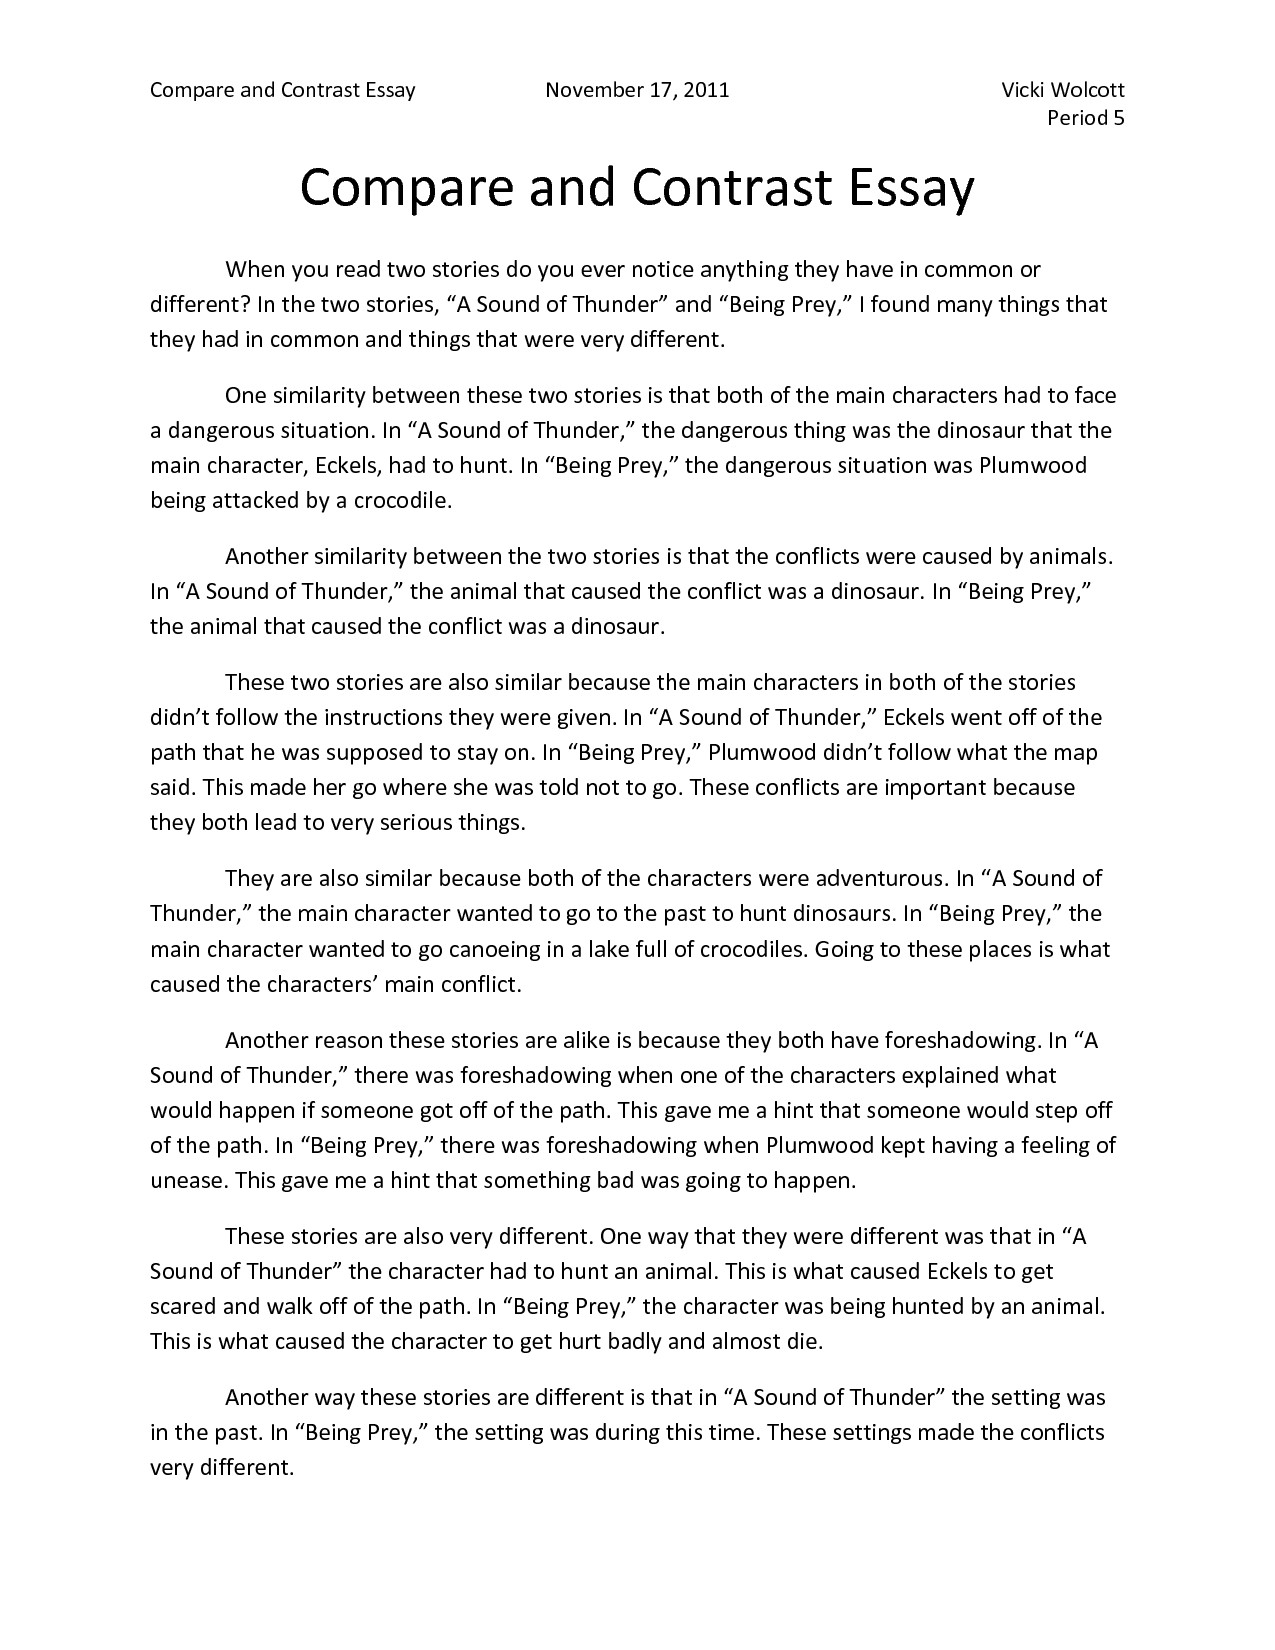 005 Essay Example An Of Compare And Contrast Comparison Ideas Awful Rubric Template Word Full